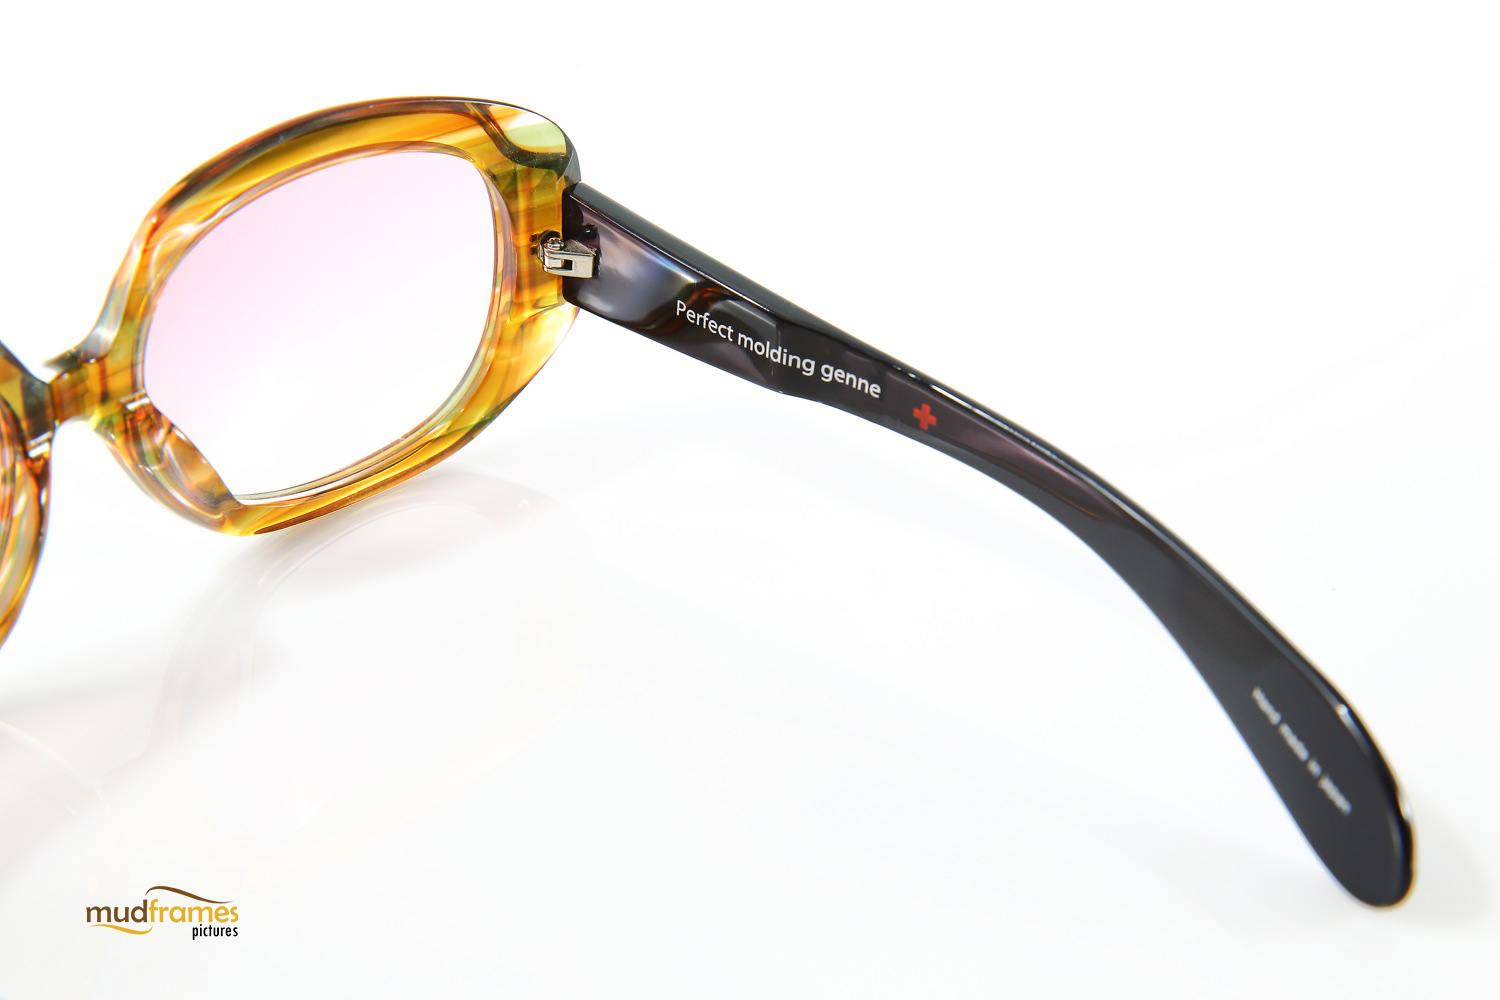 Perfect Molding Genne spectacles on white background